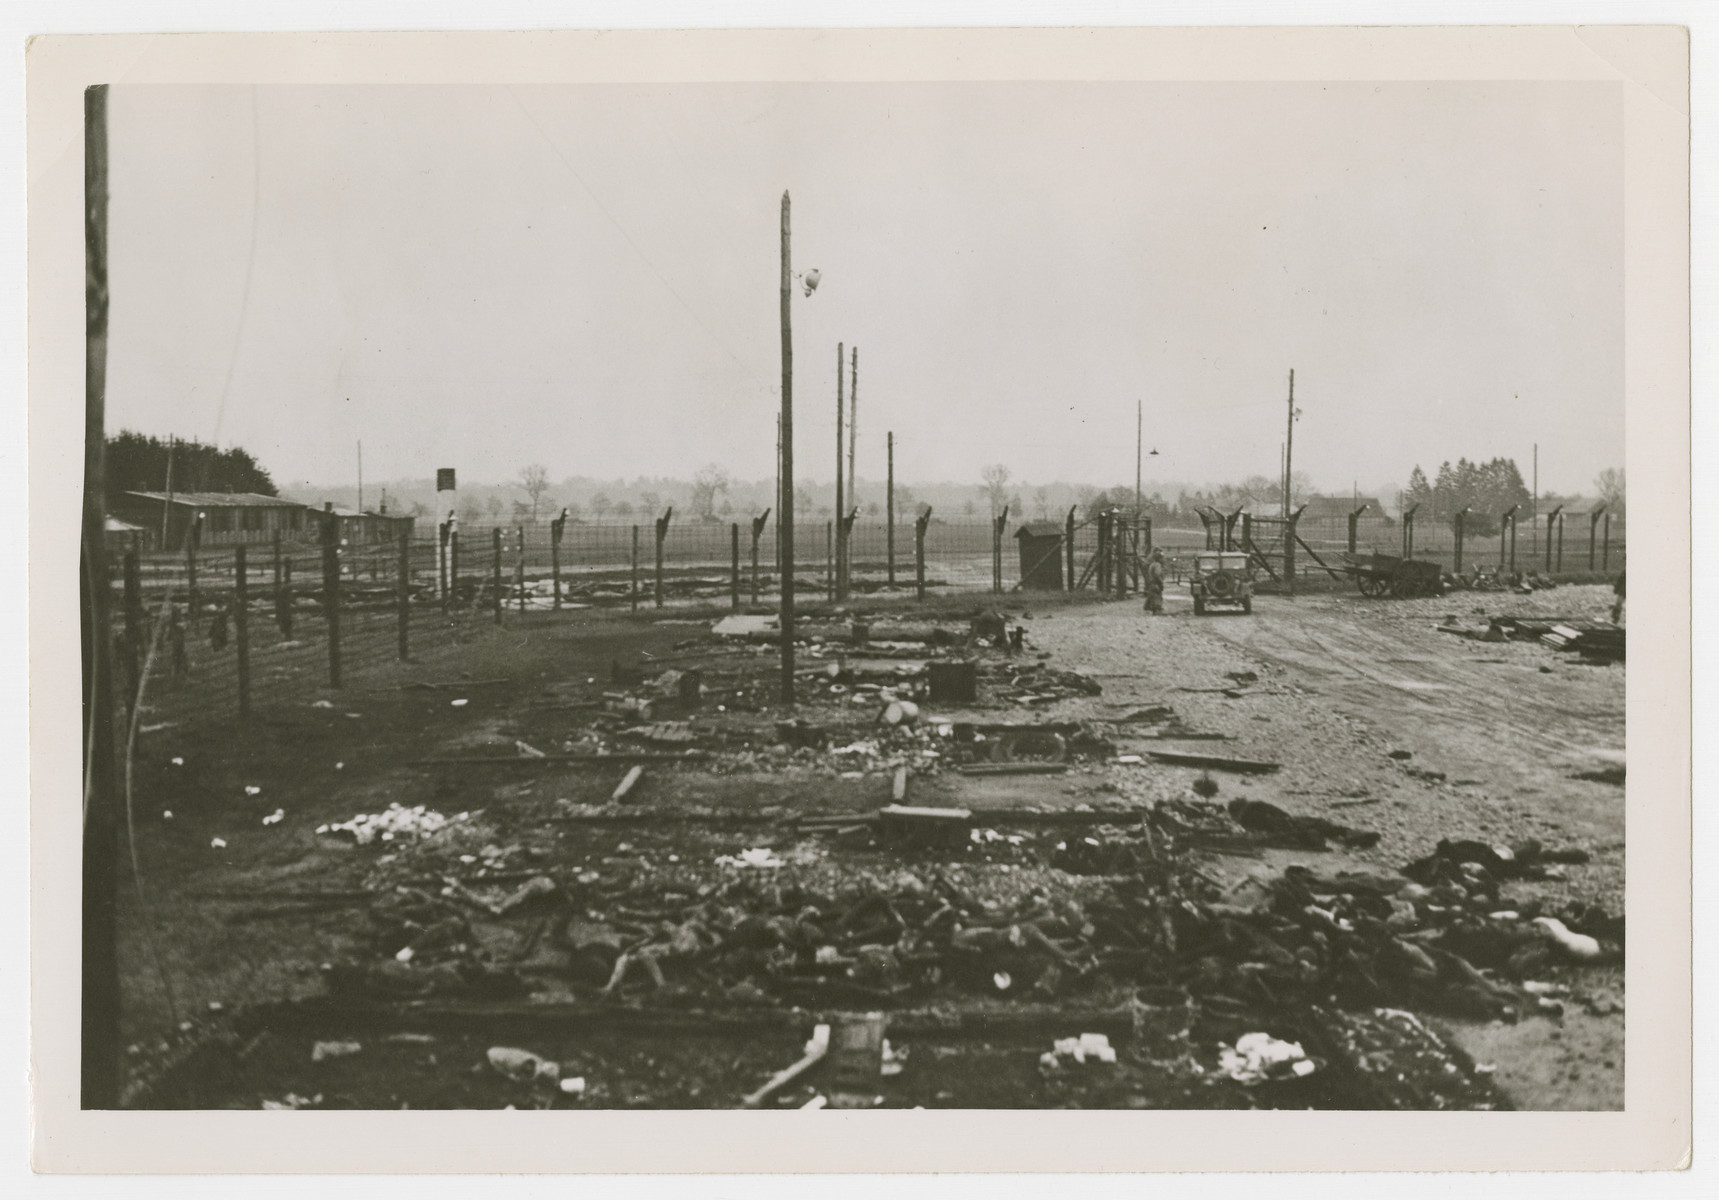 "Charred corpses lie on the ground of the Landsberg concentration camp.  The original Signal Corps caption reads, ""The emaciated bodies of victims of German cruelty at the Landsberg prison.  Before retreating in the face of the 7th Army attack the Jewish prisoners were locked in their huts and told they would be shot if they came out.  Then the buildings were set on fire.  Some burned to death in their huts, others found strength enough to break down the door and crawl out to die in the streets.  Most prisoners were naked, some had remnants of clothing on their charred bodies.  Long lines of charred huts with the remains of the victims lying in the ashes."""